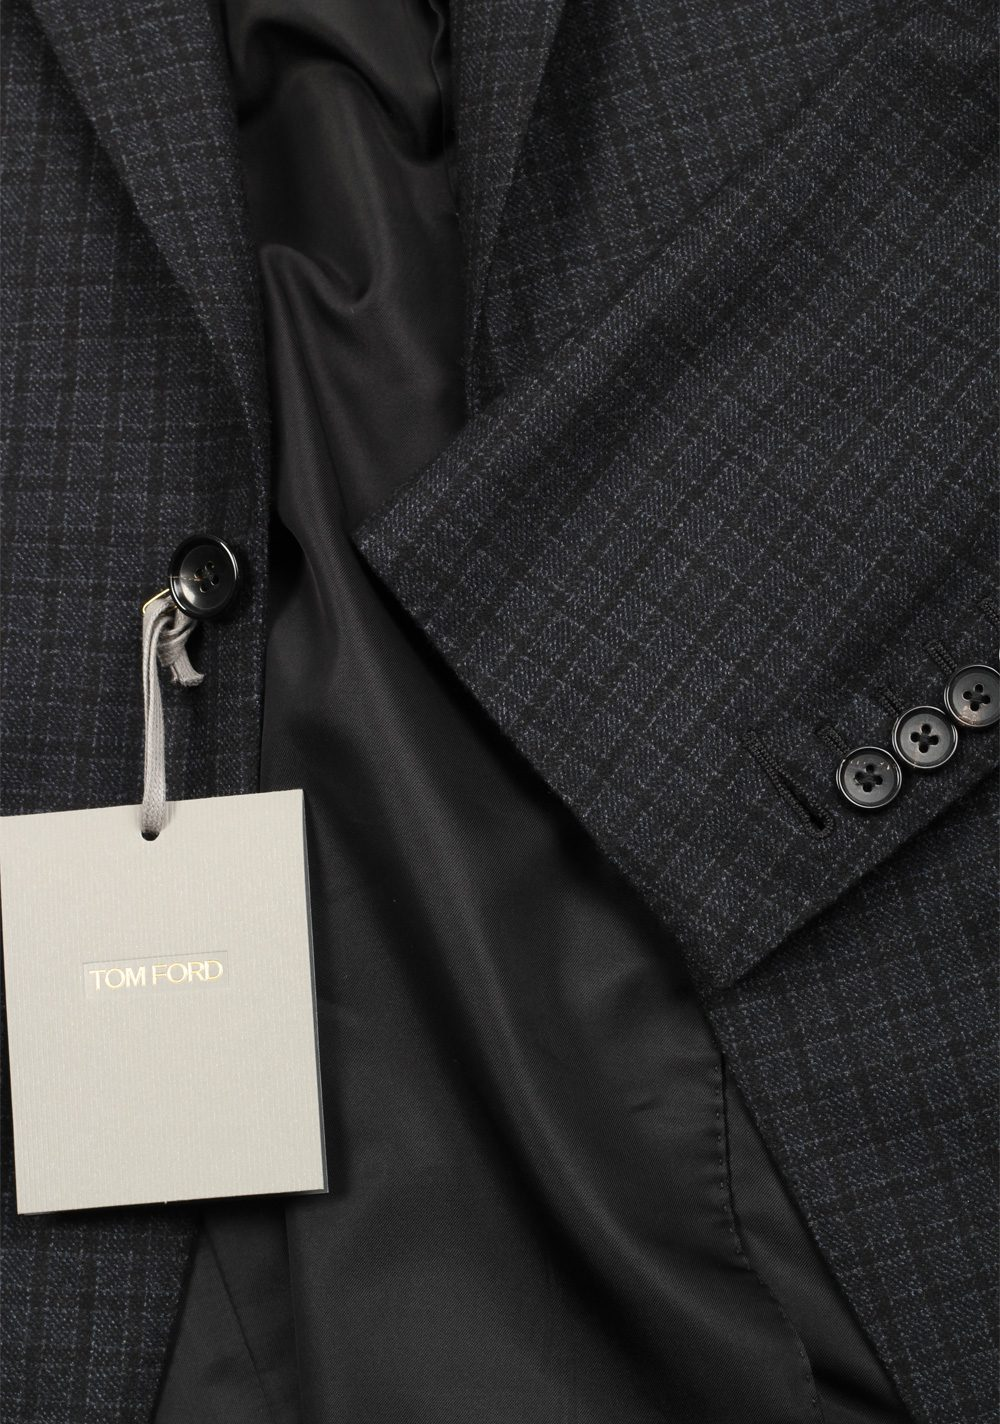 TOM FORD Buckley Blue Checked Suit Size 48 / 38R U.S. Wool Cashmere | Costume Limité